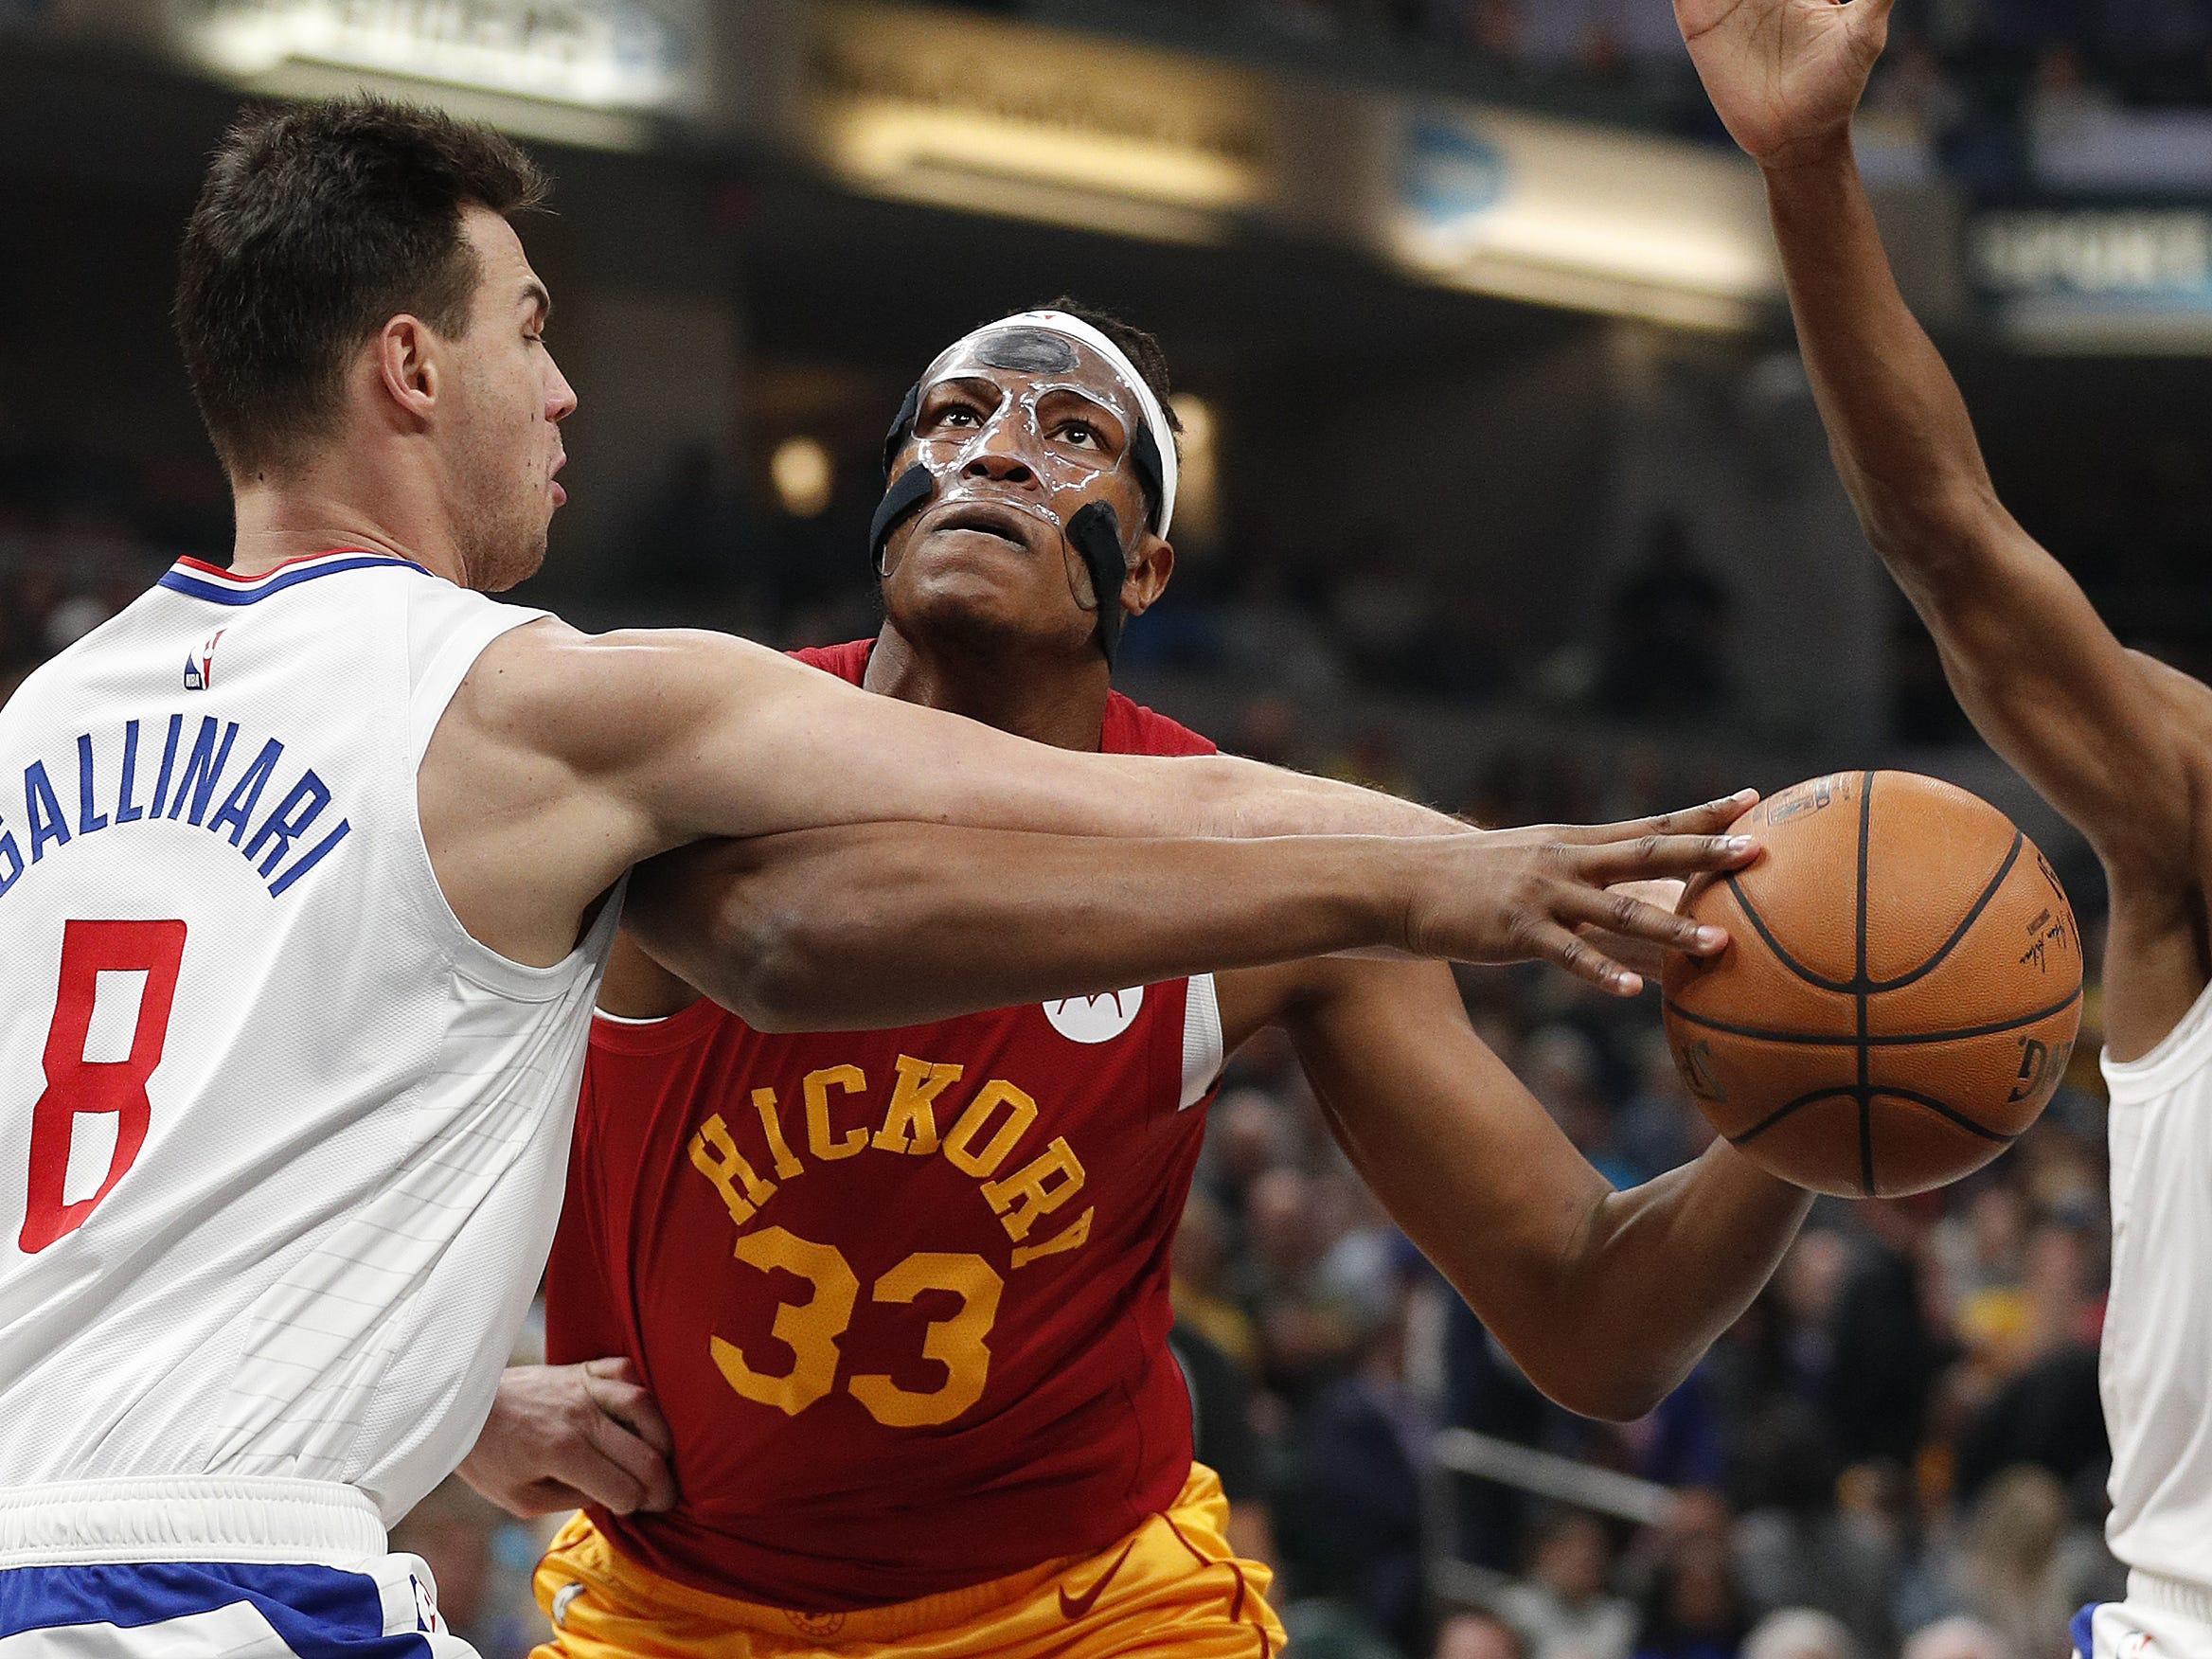 Indiana Pacers center Myles Turner (33)LA Clippers forward Danilo Gallinari (8)  is fouled by in the first half of their game at Bankers Life Fieldhouse on Thursday, Feb. 7, 2019.